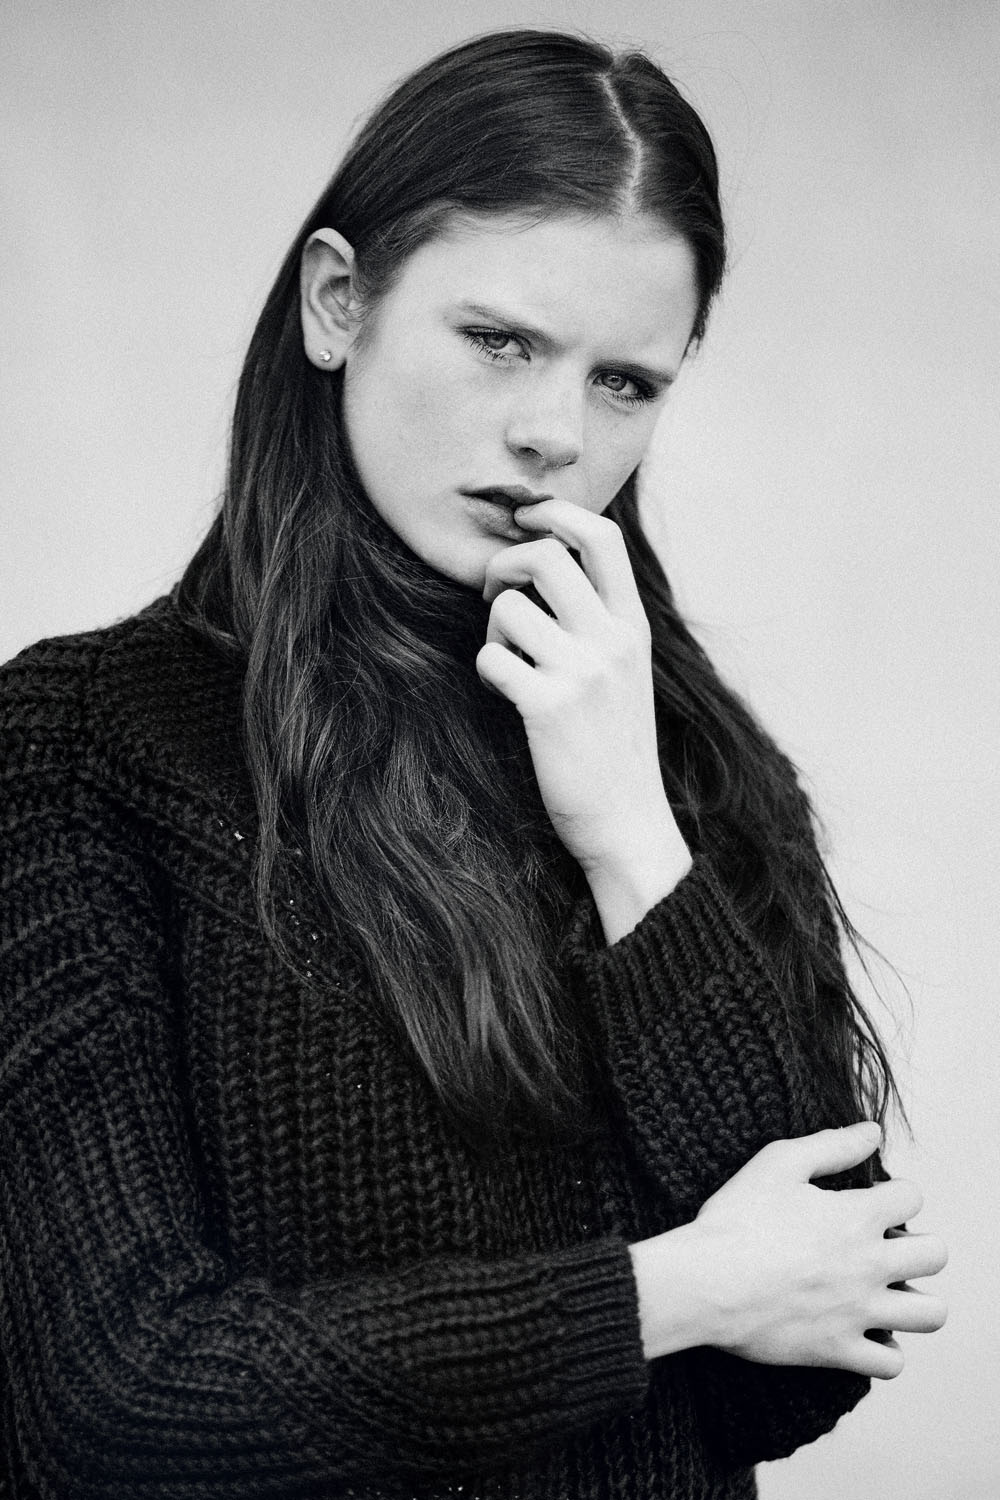 Monochrome moments by Veronika Bures for CHASSEUR MAGAZINE (7)